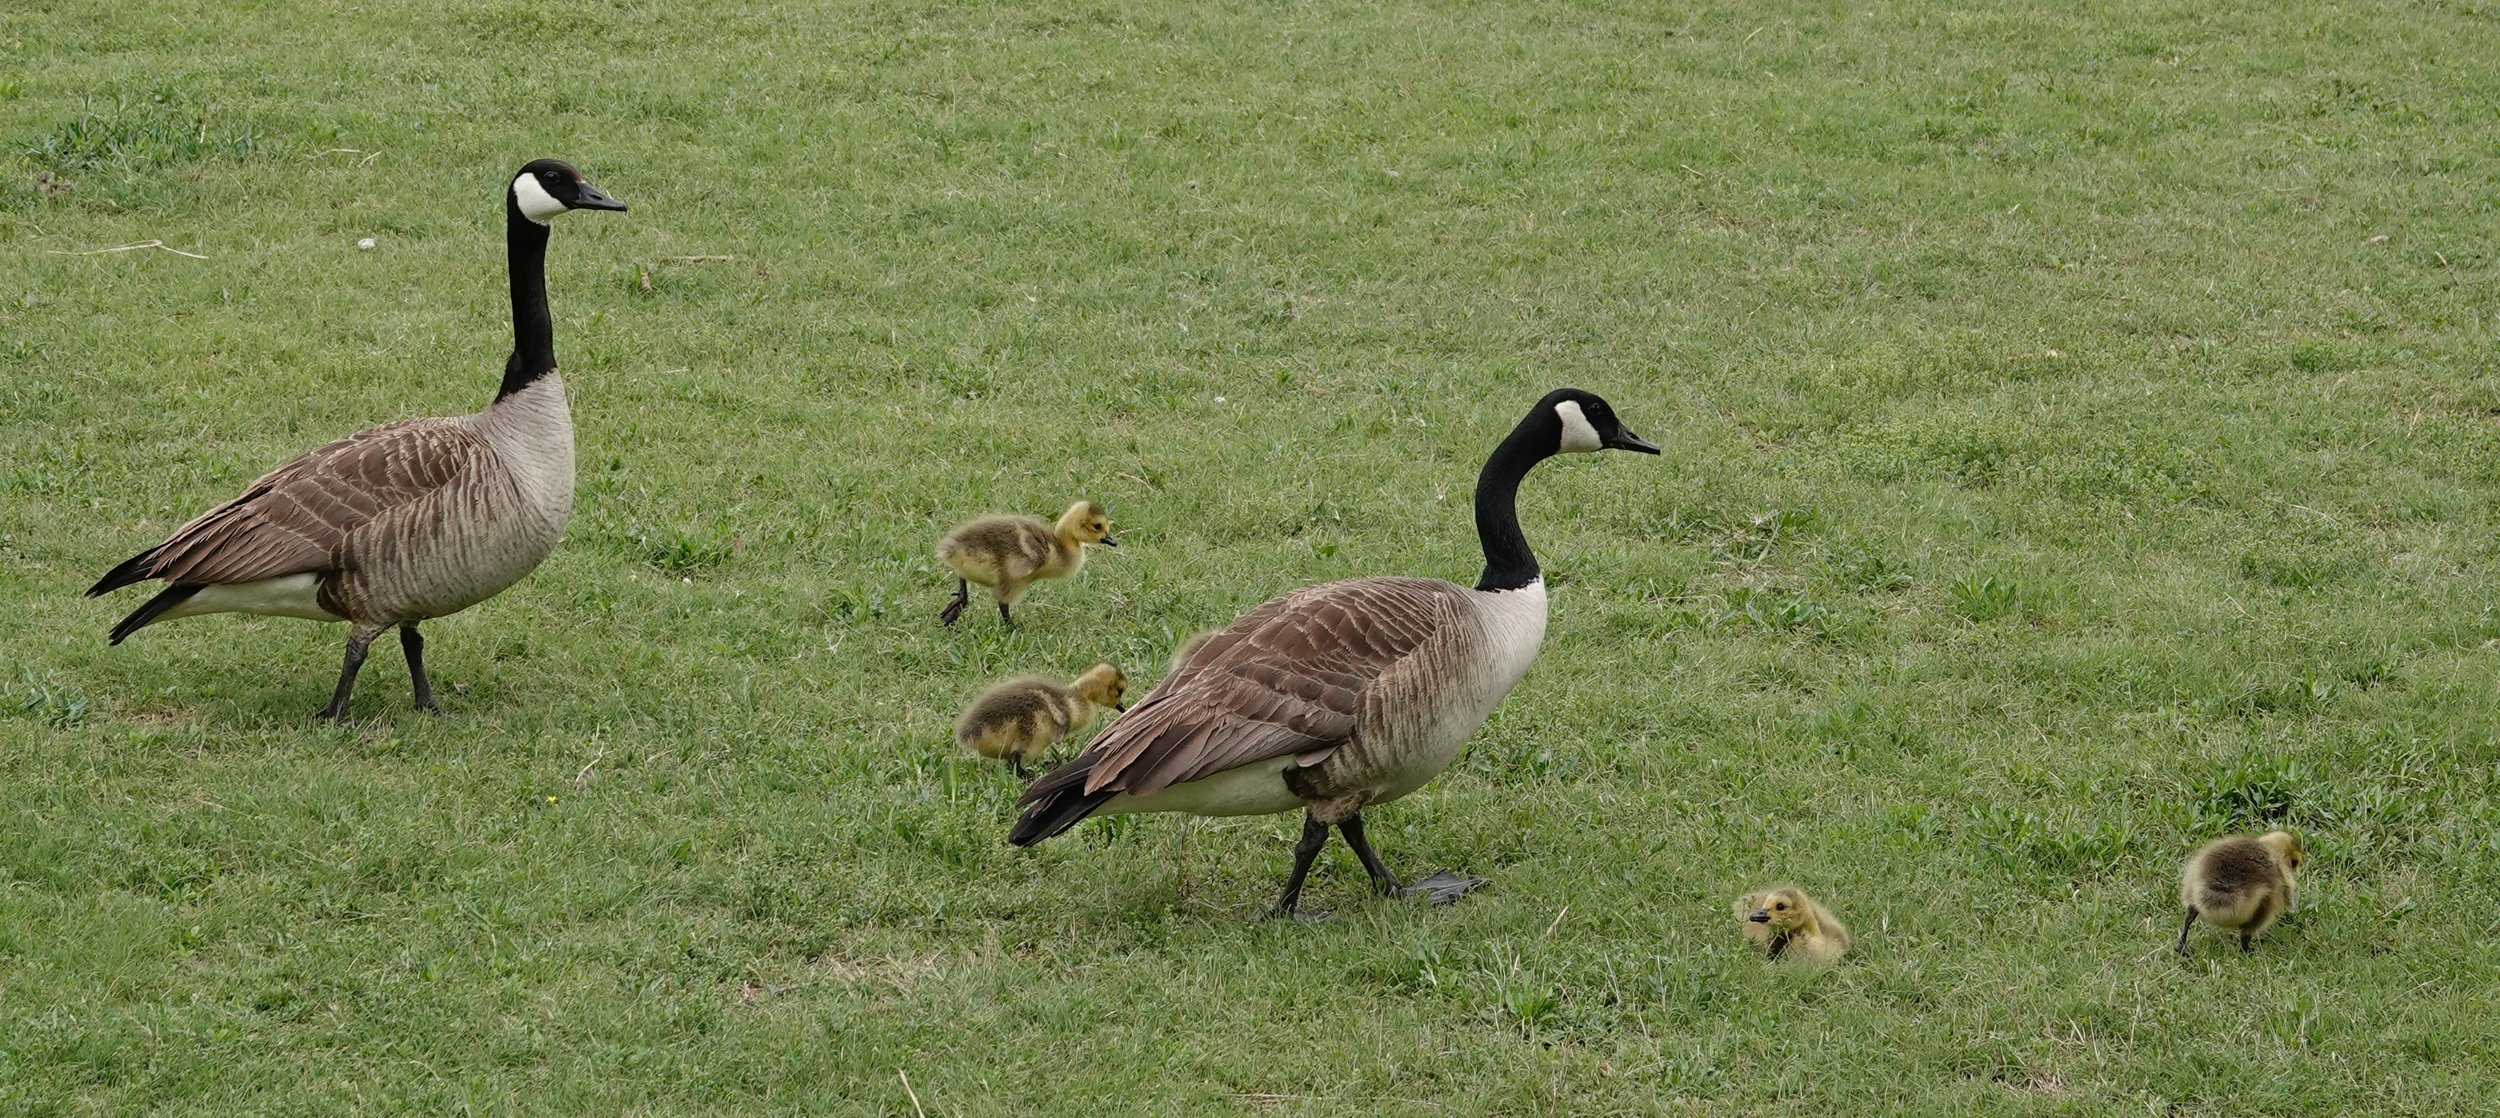 Goslings learning how to mow the lawn.